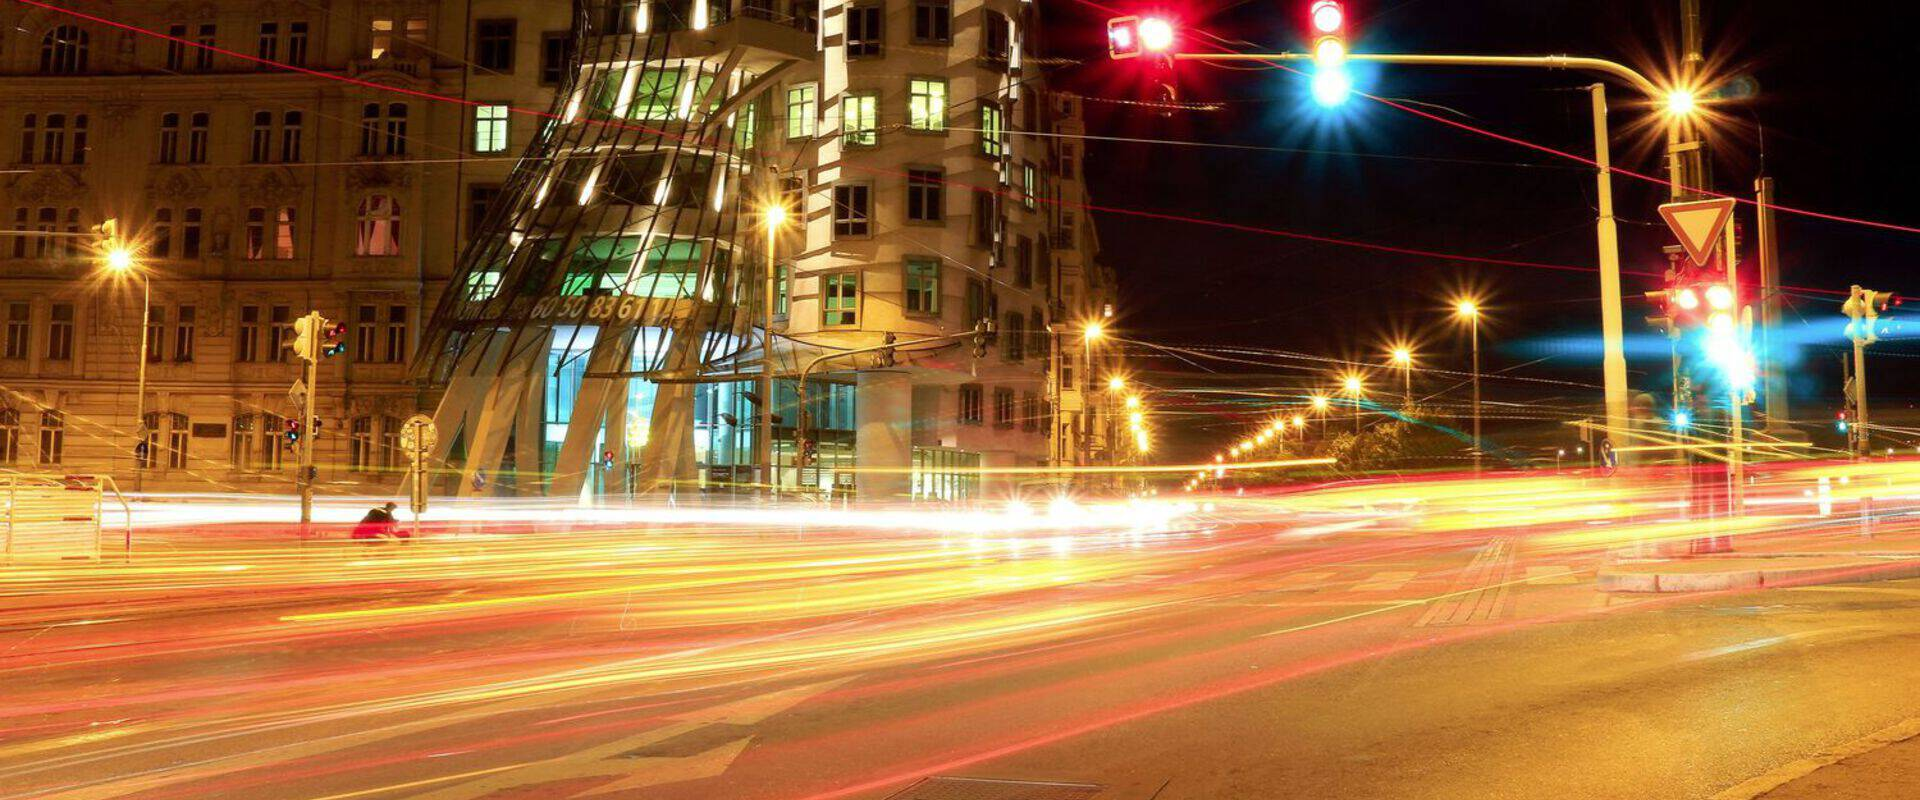 Are Red Light Cameras Legal? - The Grey Area Legality of Red Light Cameras and Automatic Fines